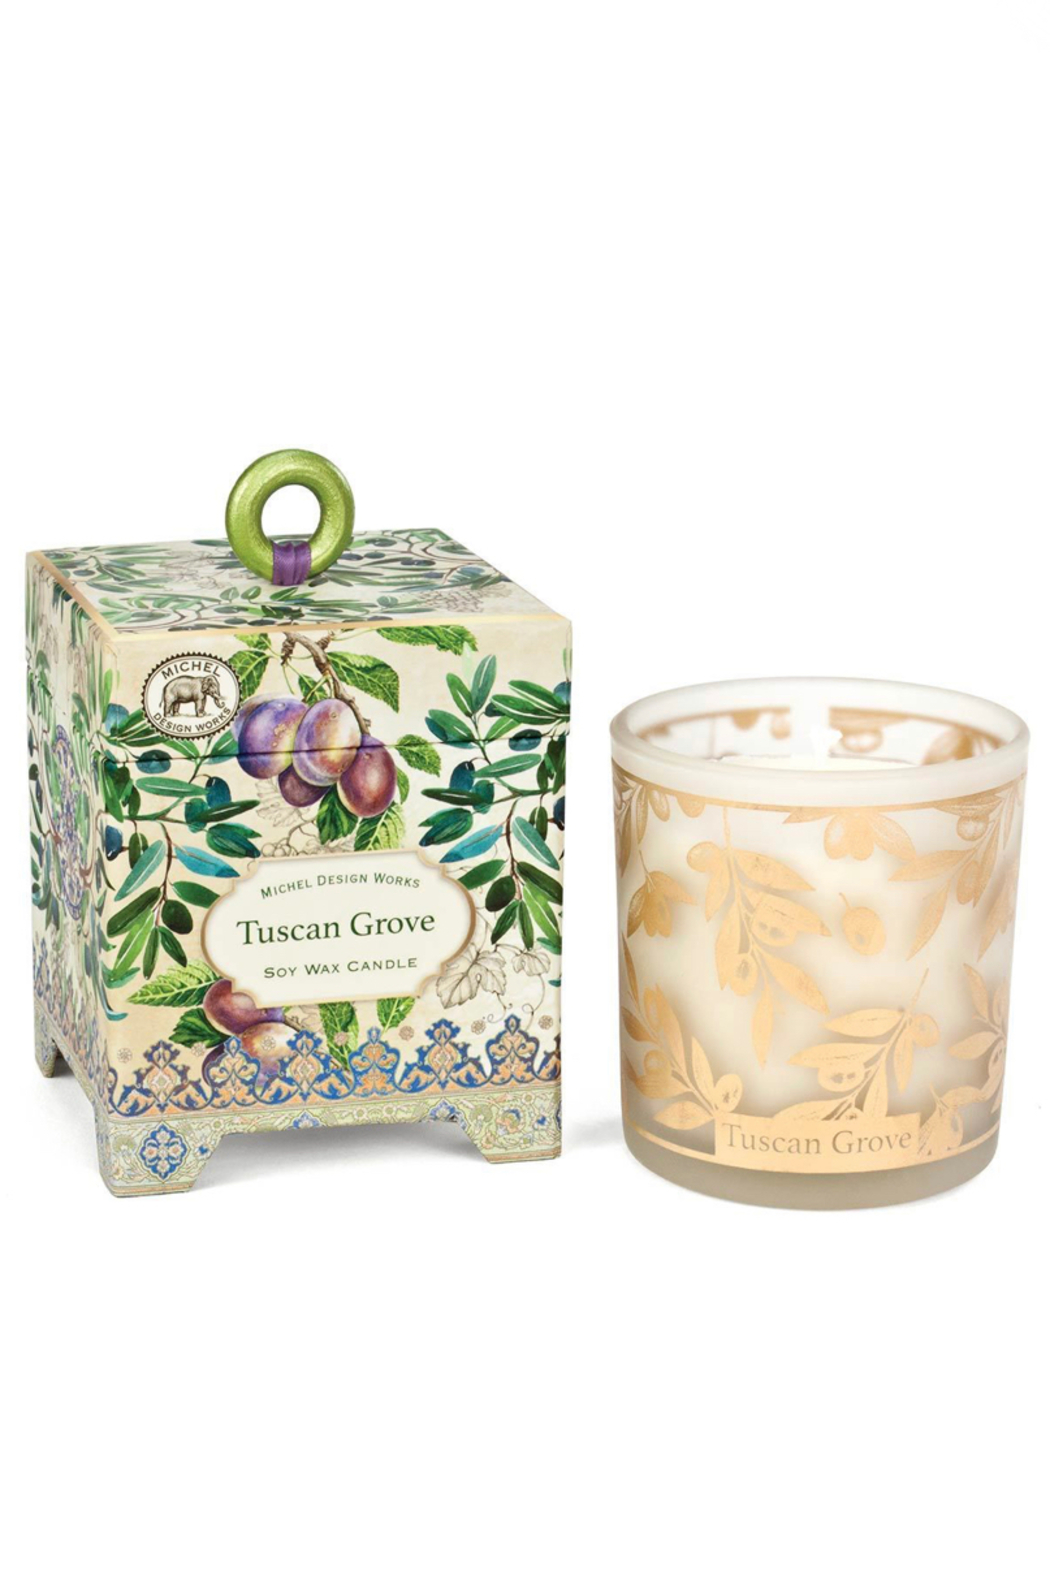 Michel Design Works Tuscan Grove Soy Wax Candle-Small 6.5oz - Main Image